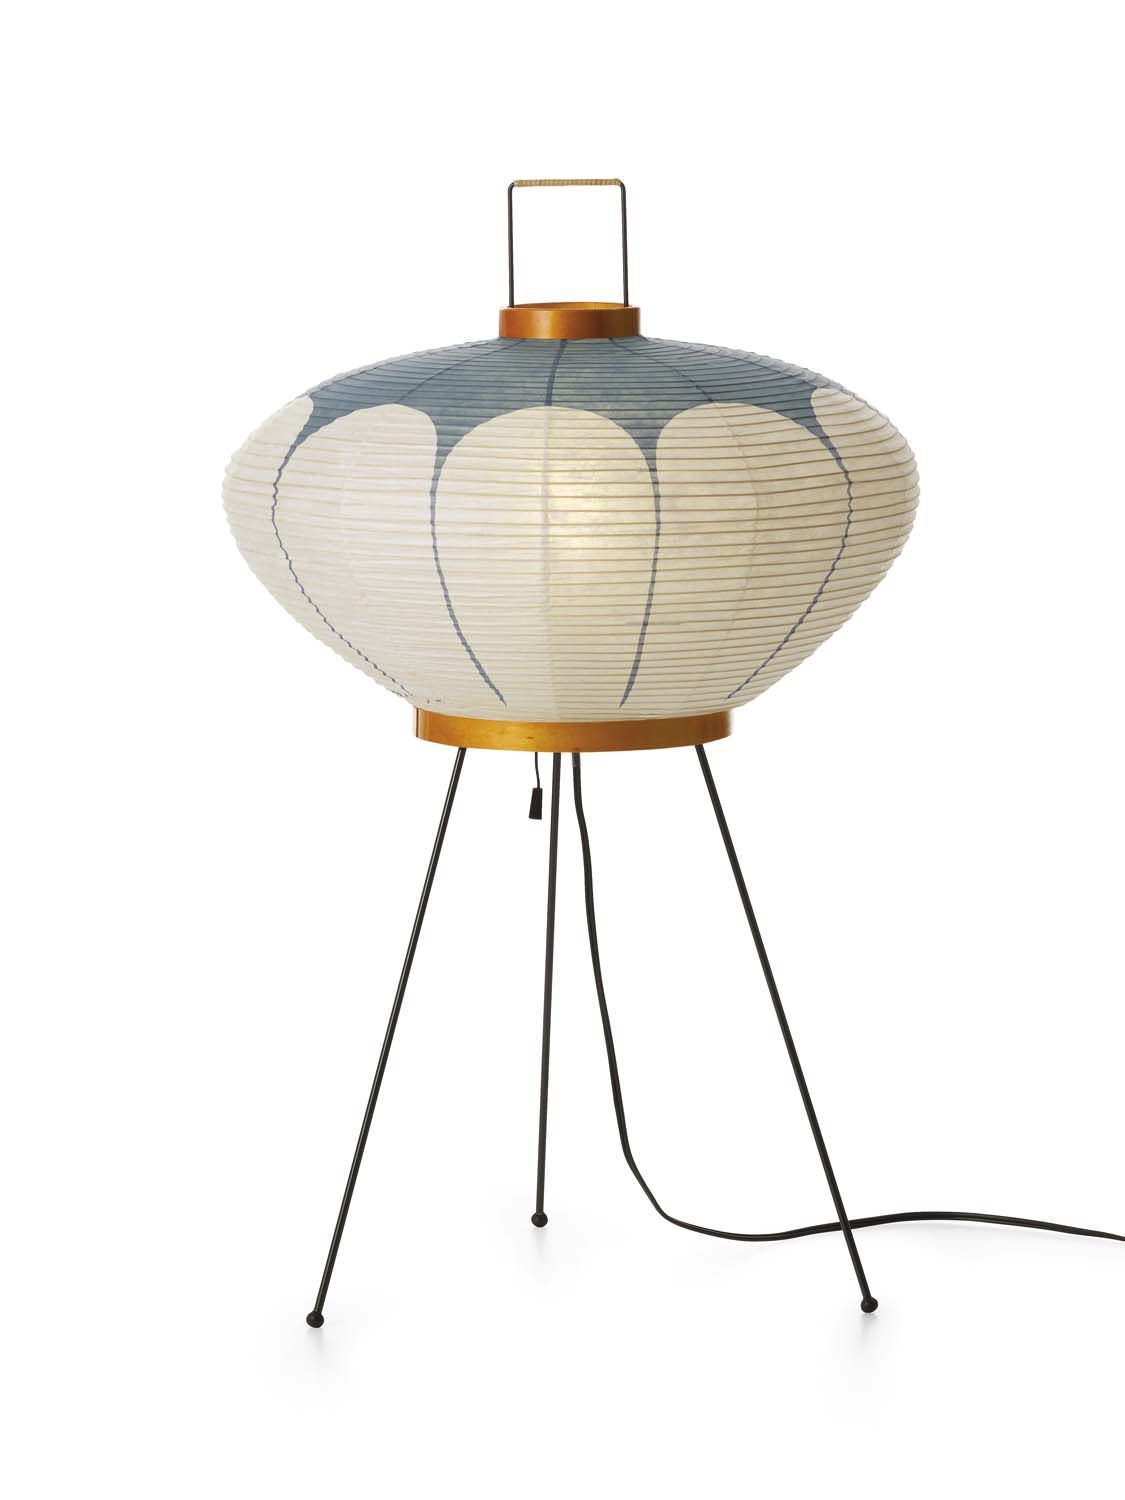 Kagadato Selection The Best In The World Industrial Lighting Design Isamu Noguchi Floor Lamp Vintage Mid Century Lamps